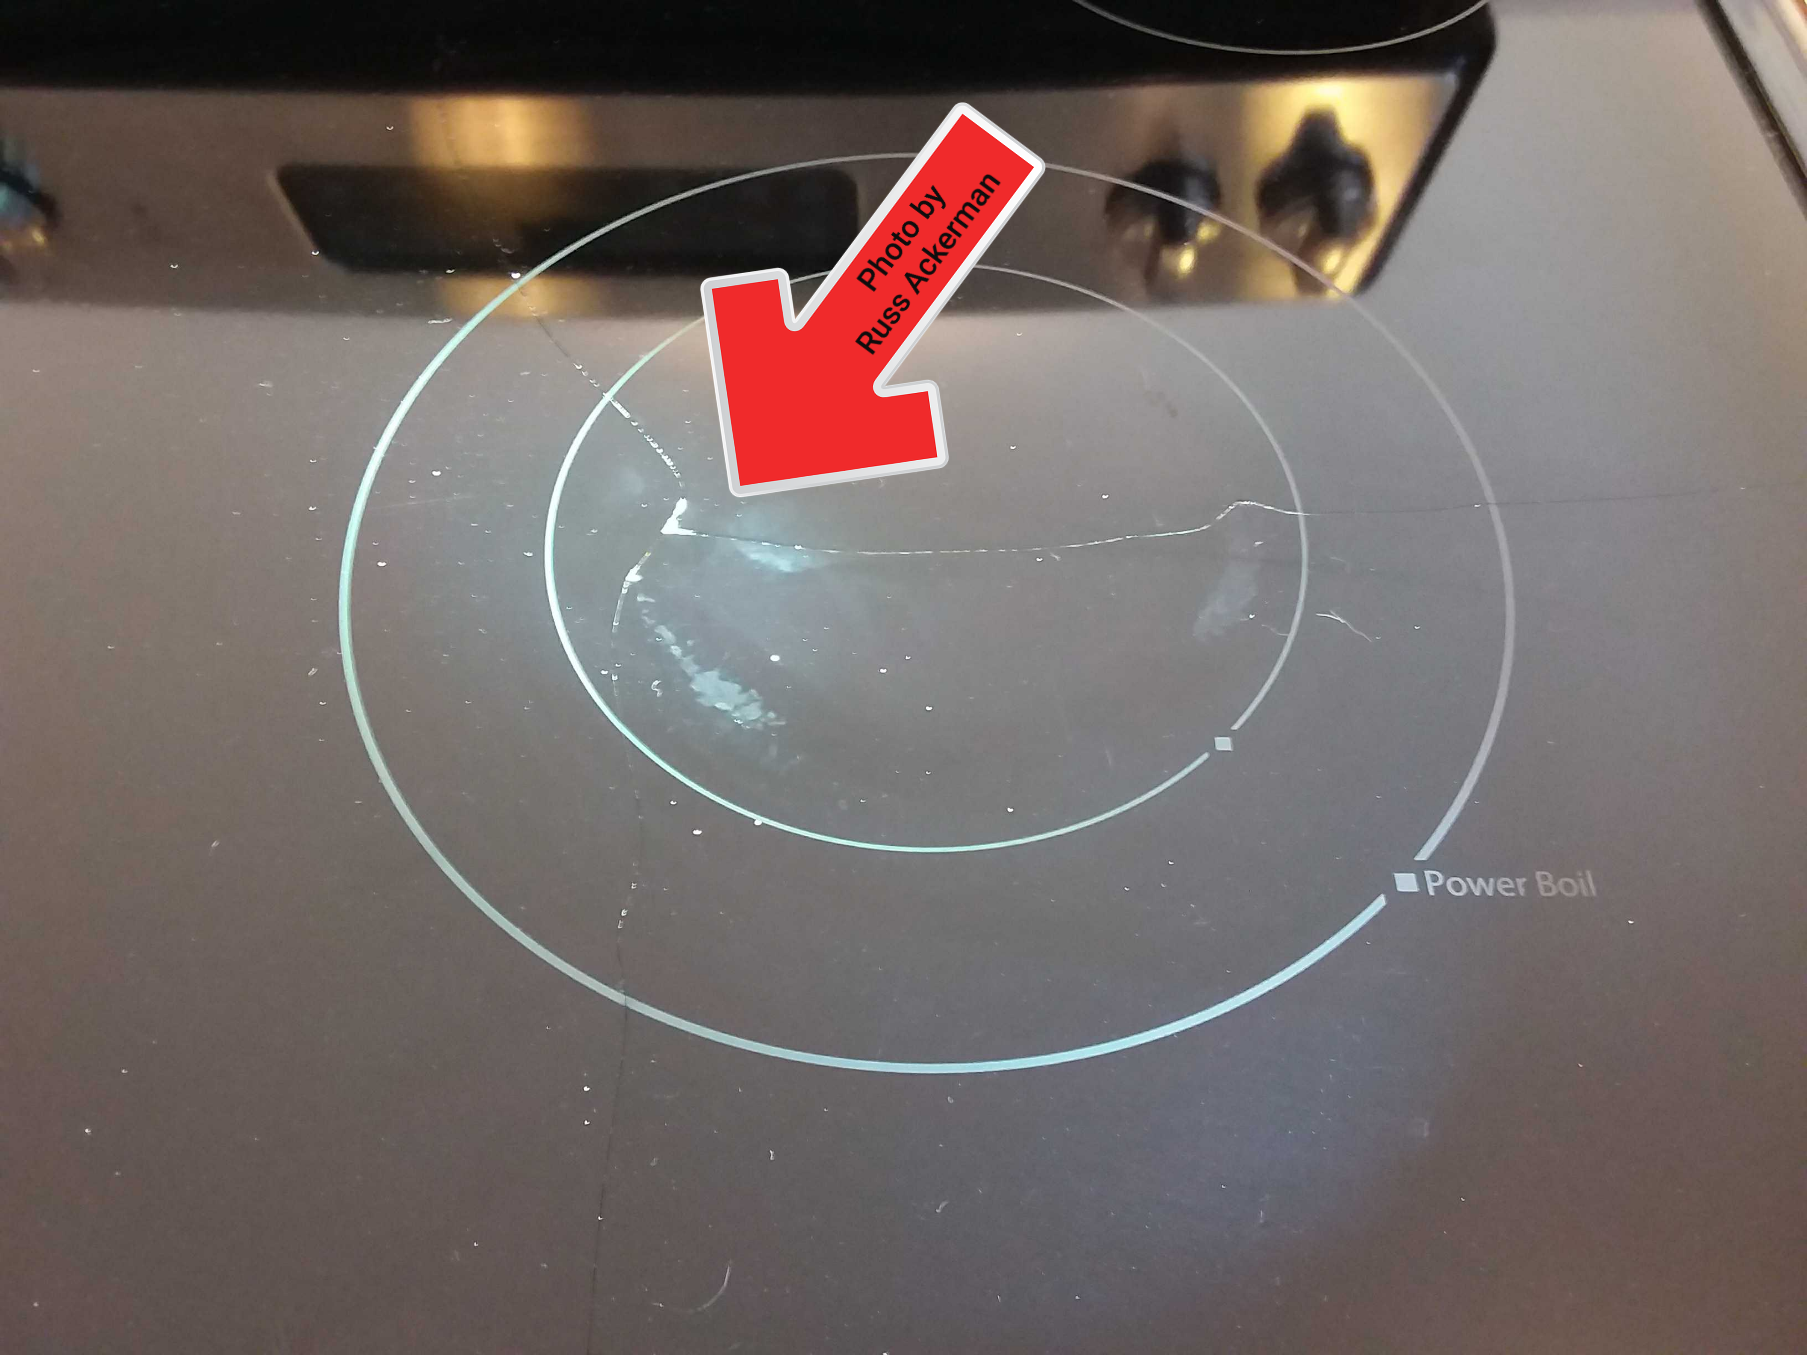 A cracked cooktop does not hinder proper operation of the range, it will allow moisture inside and may become a cut hazard.